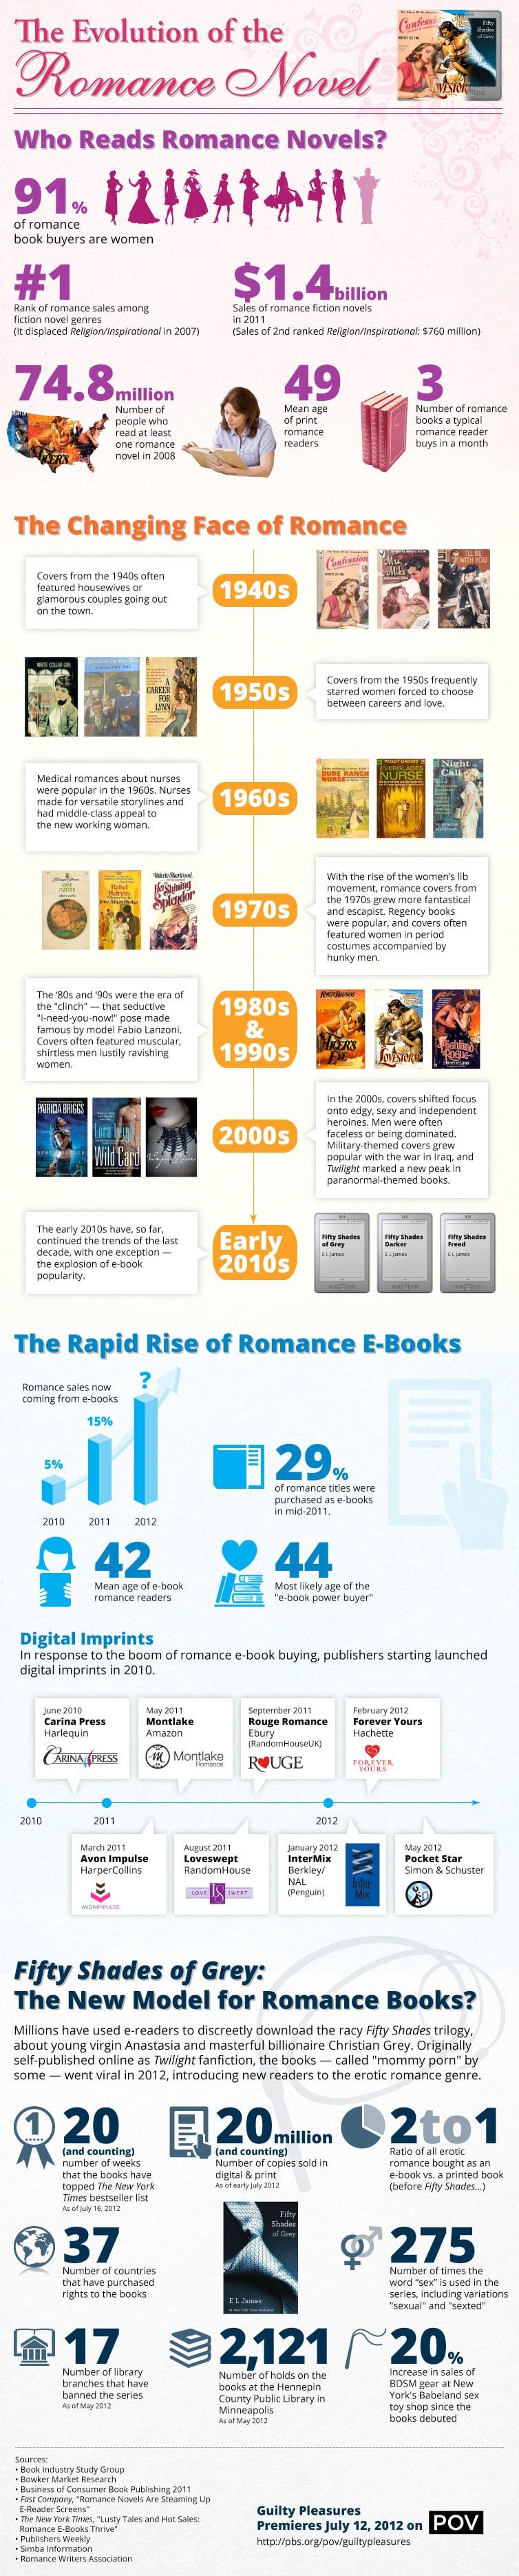 Infographic about romance novels